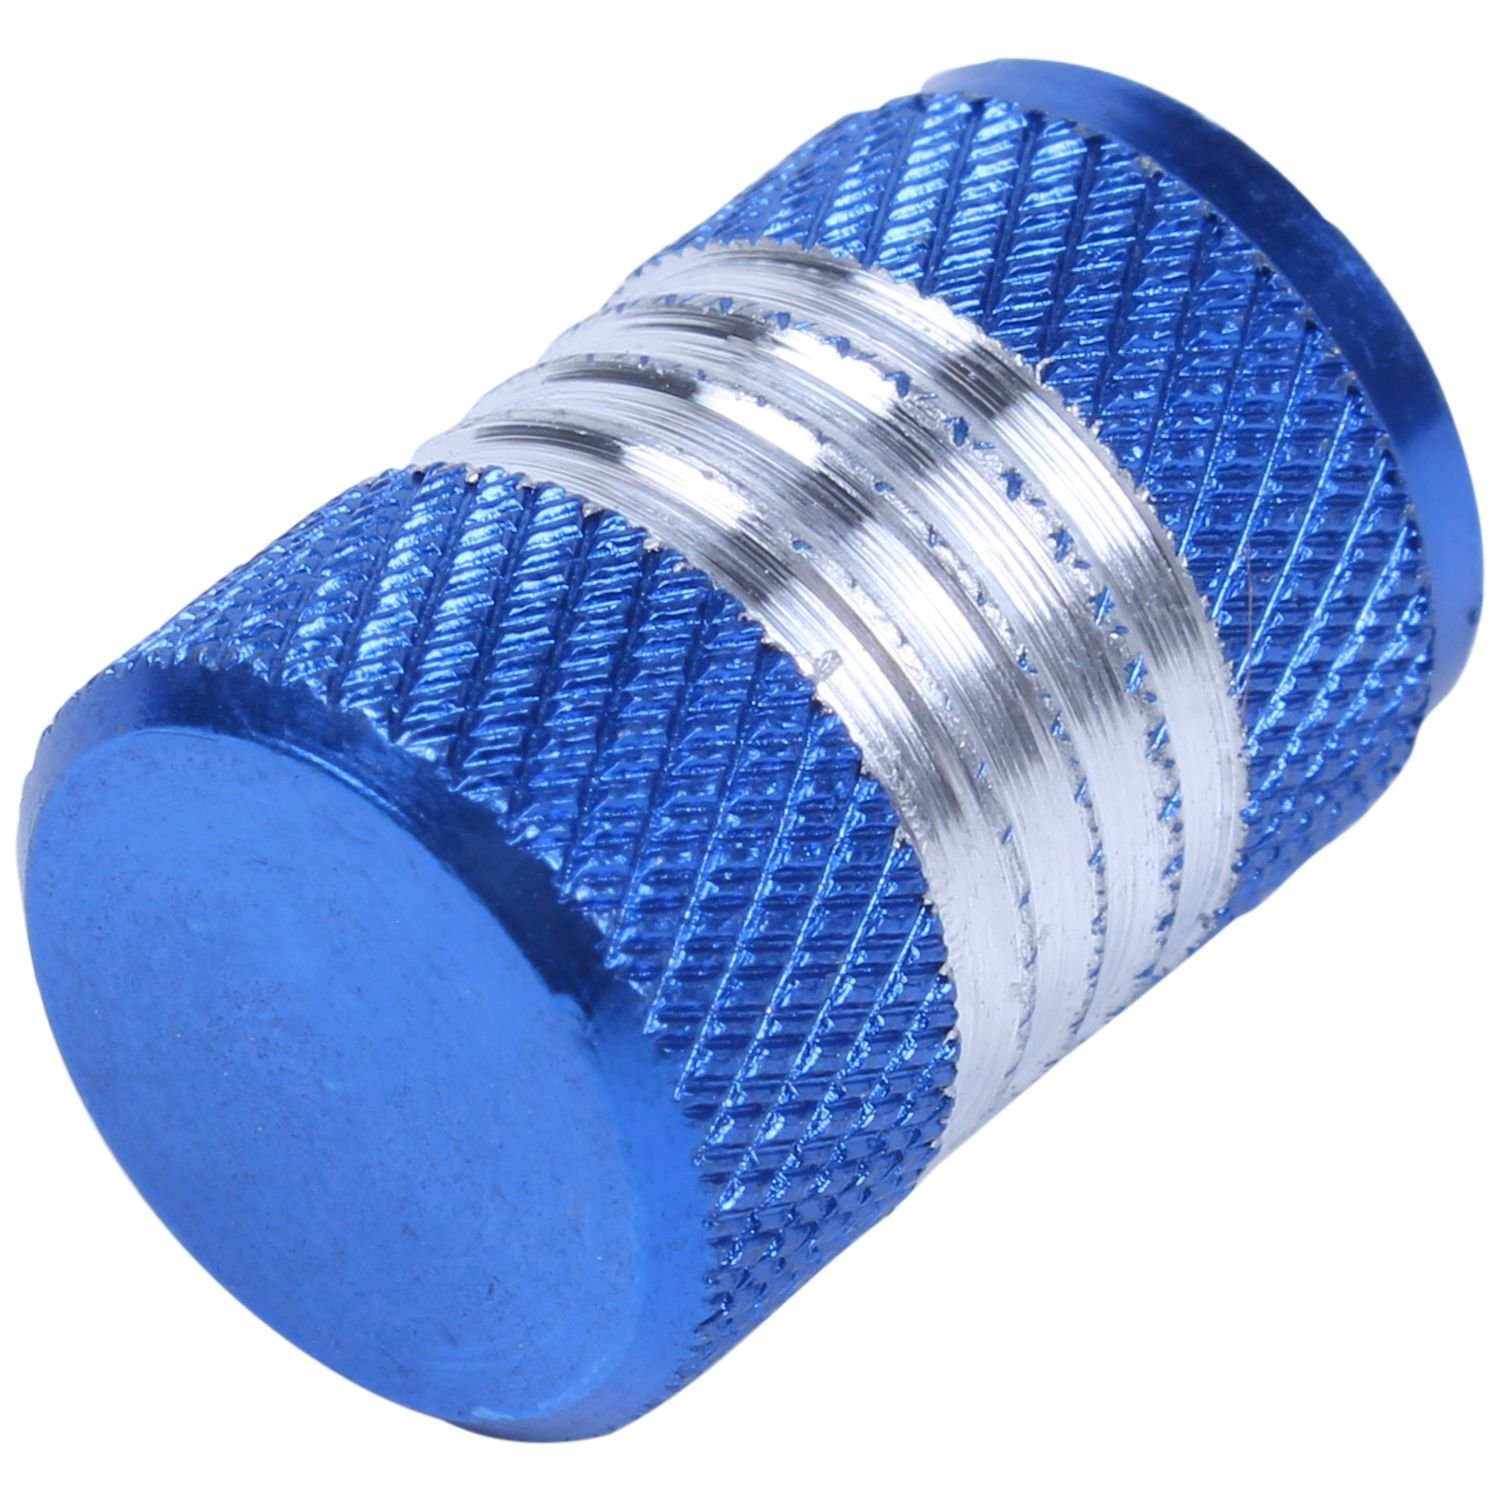 Tires Stem Caps - TOOGOO(R)4Pcs Aluminum Alloy Car Motorcycle Wheel Tire Valve Stem Cap Dust Cover Blue